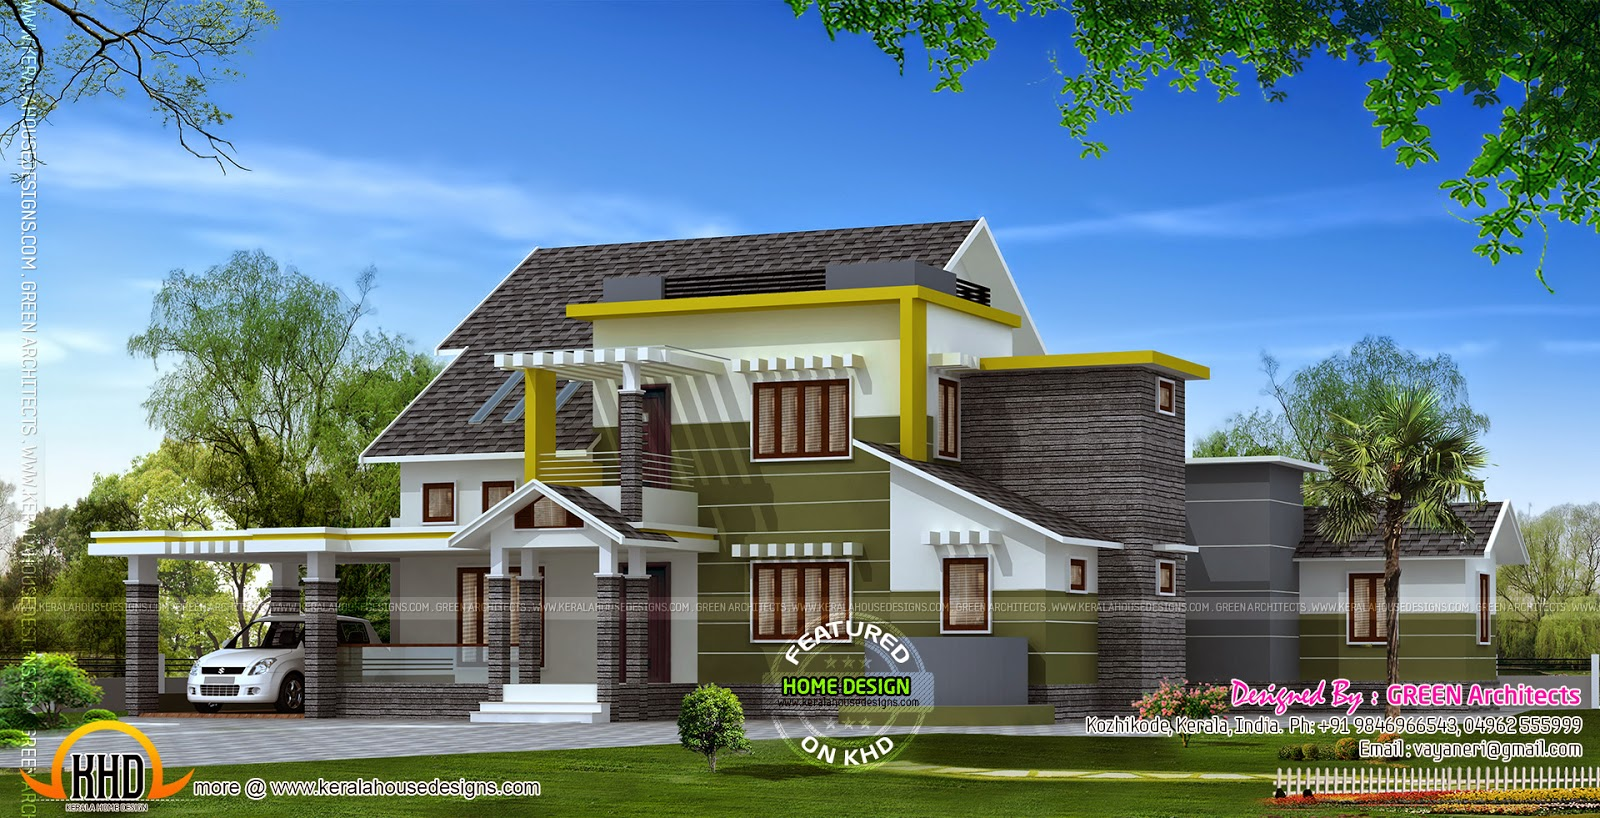 4 bhk contemporary house kerala home design and floor plans for 4 bhk home design